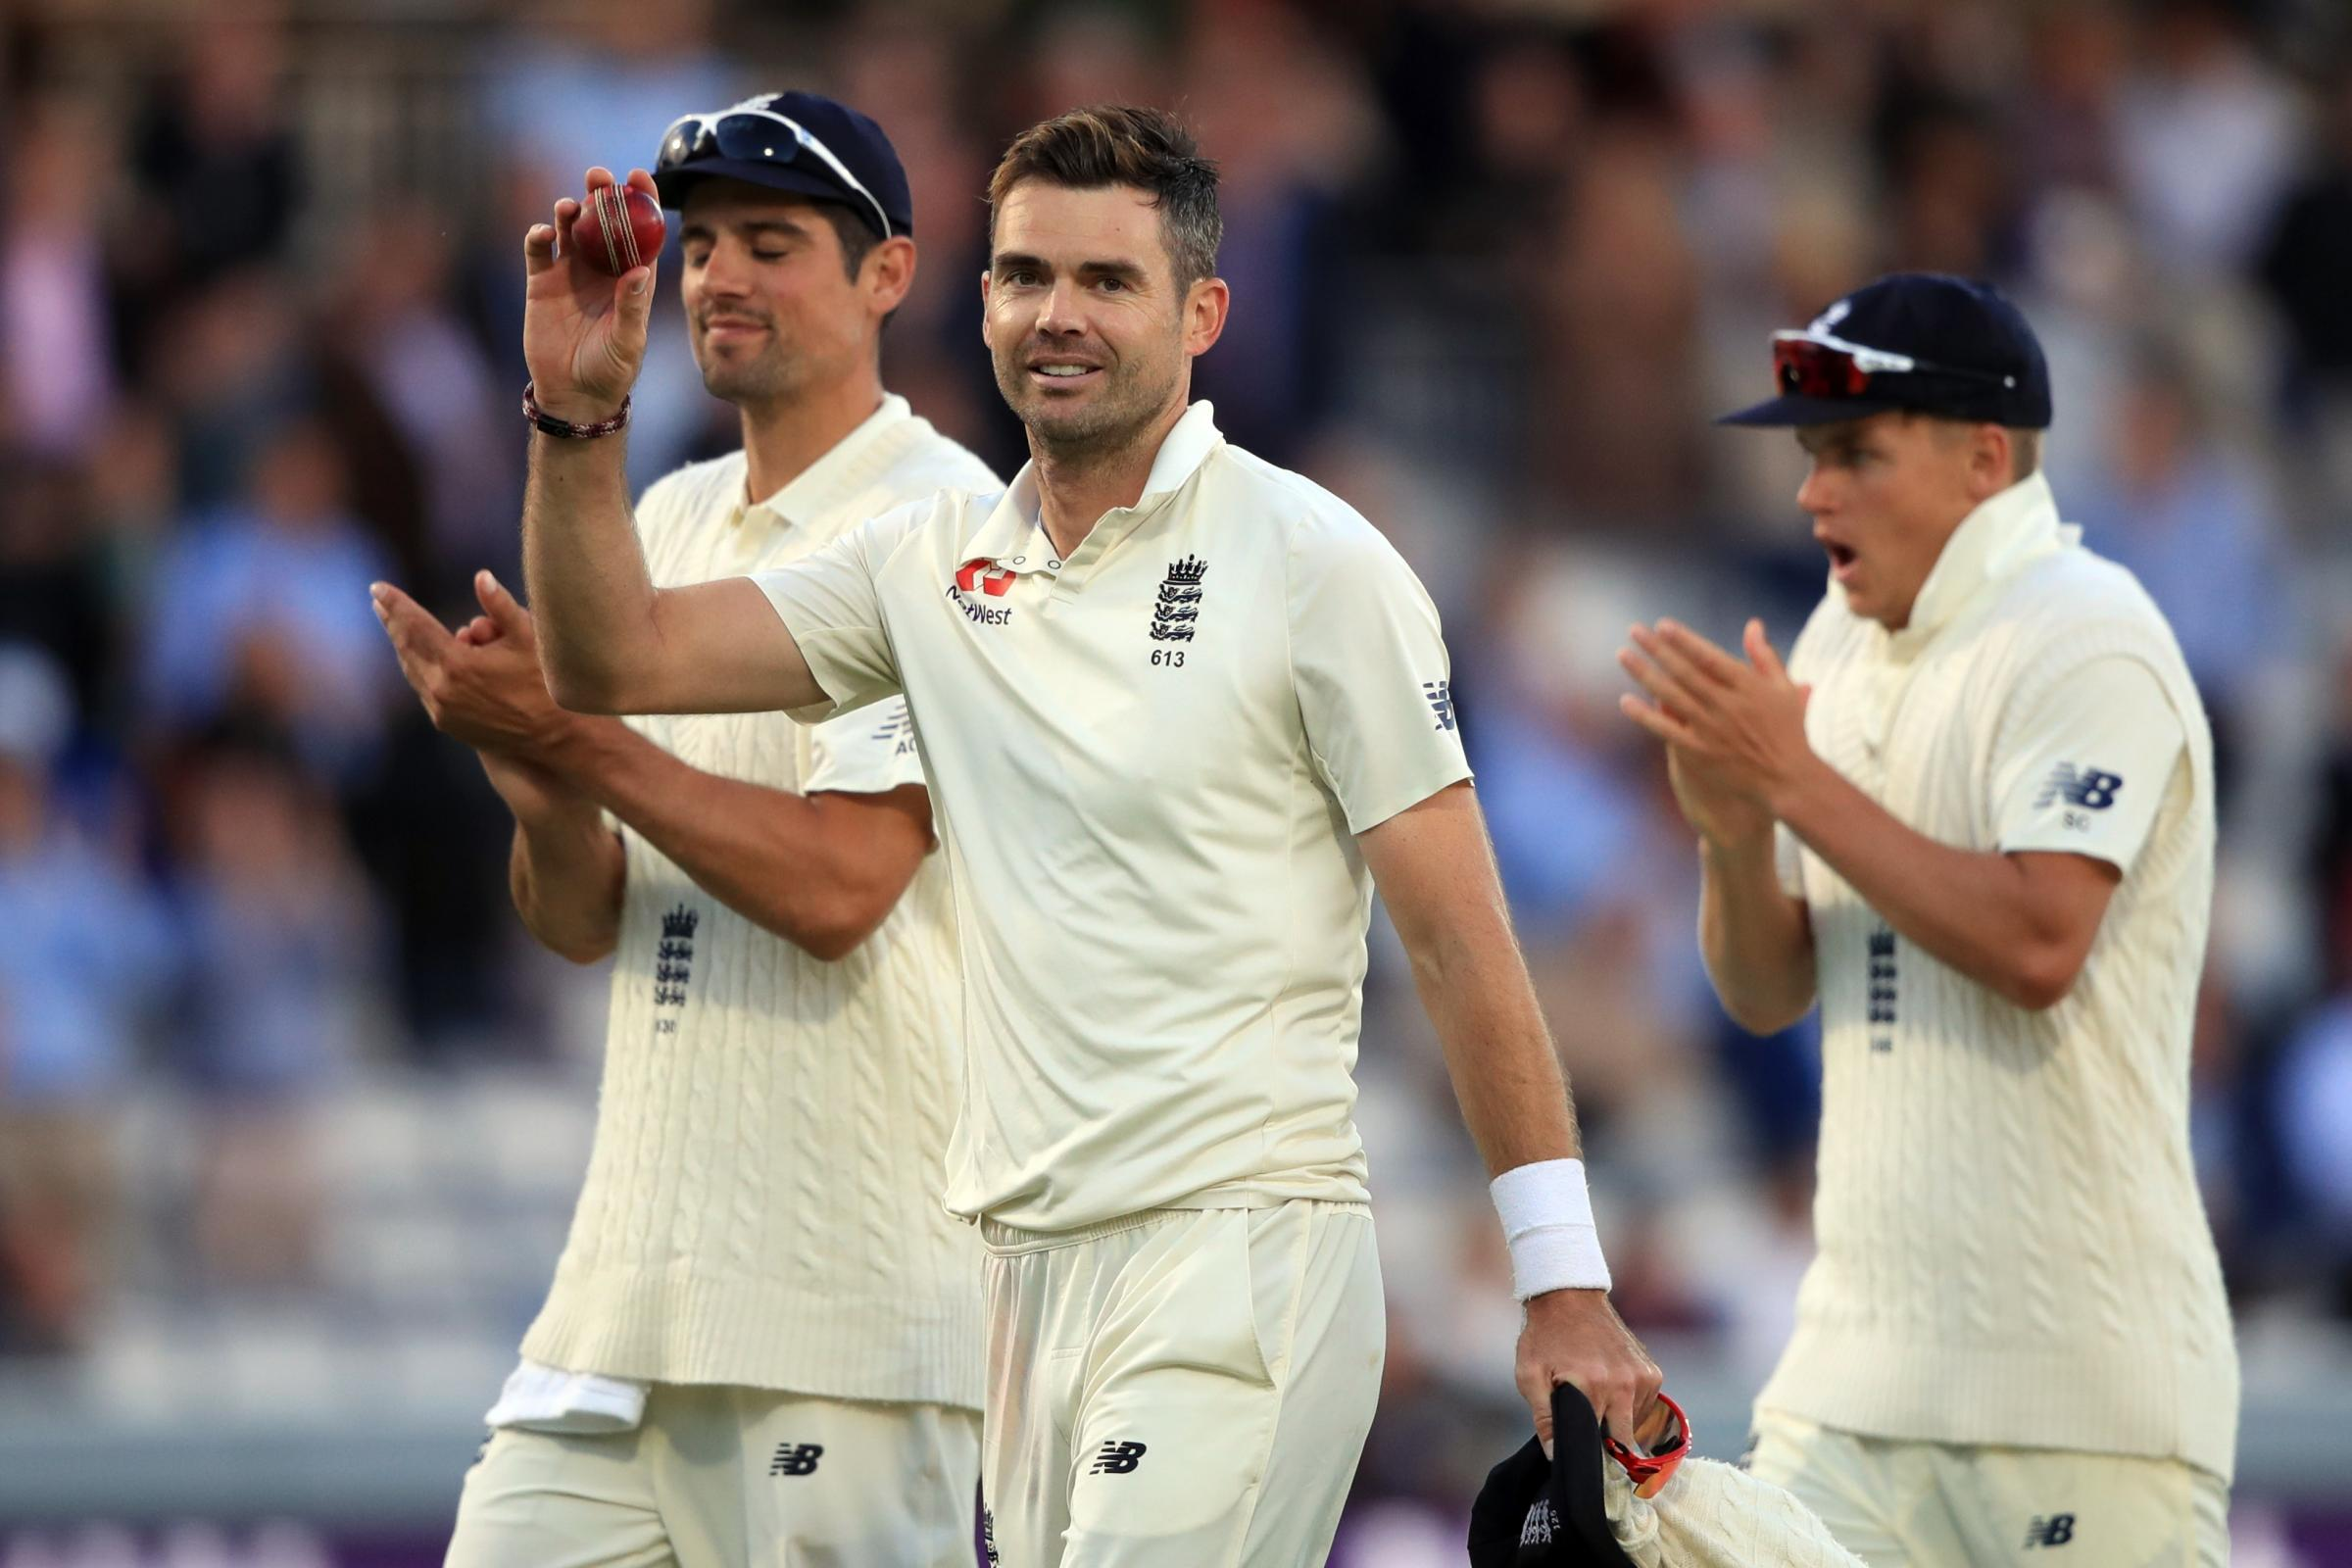 James Anderson will look to add to his wicket tally at Trent Bridge